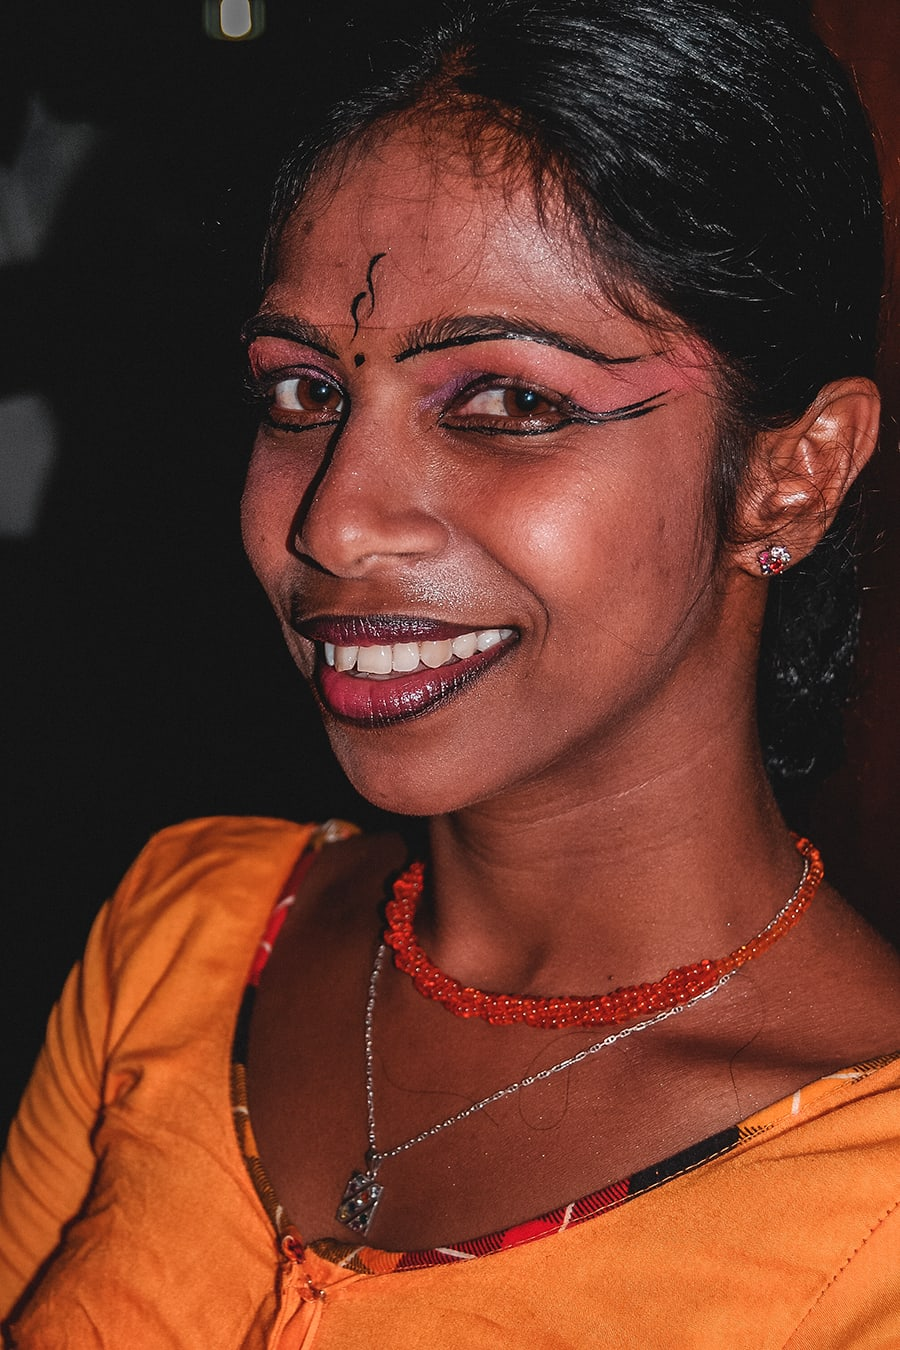 Dance performer in Kandy, Sri Lanka.